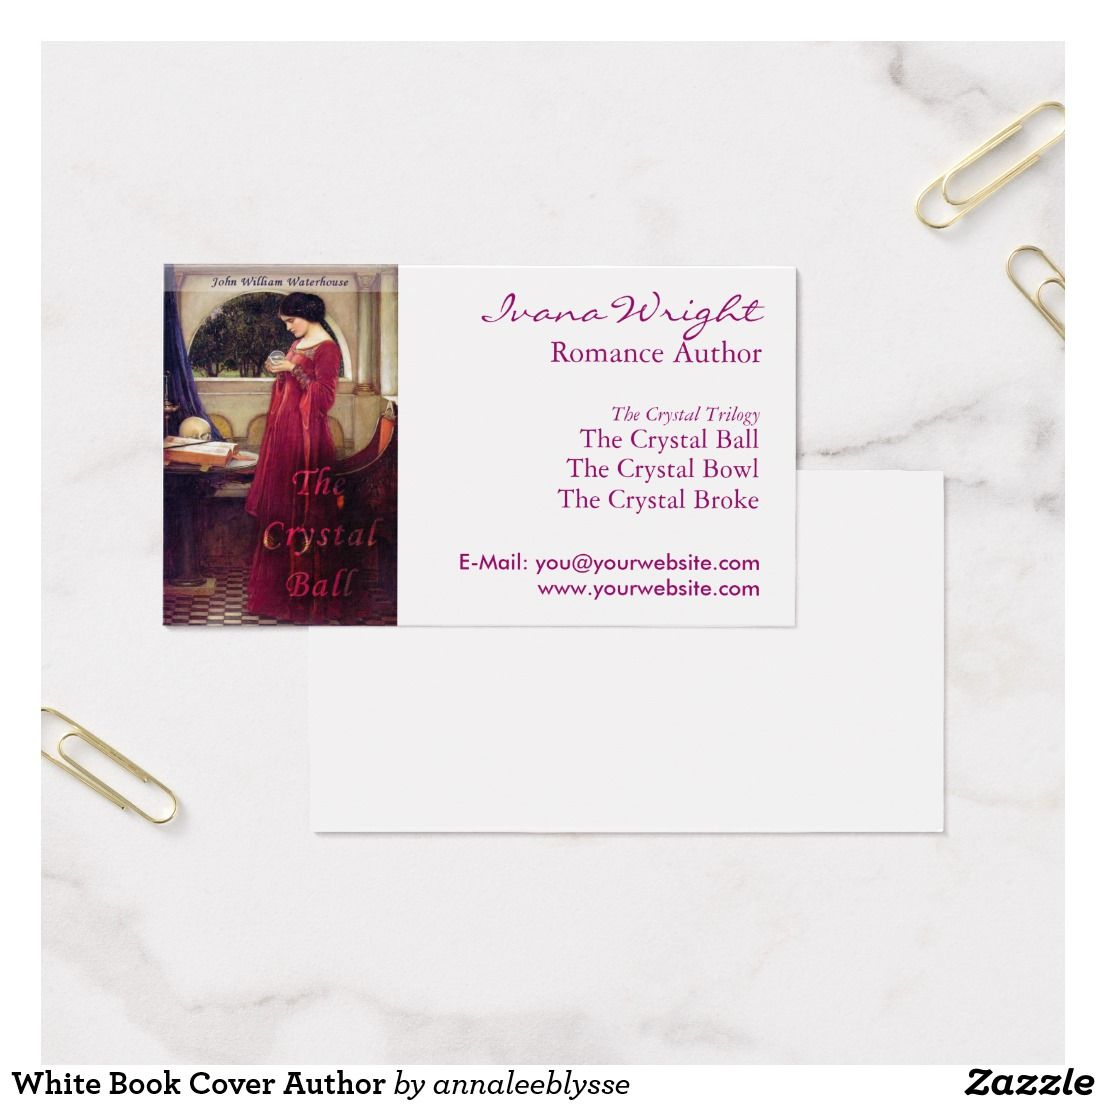 White Book Cover Author Business Card | Business cards, Book covers ...